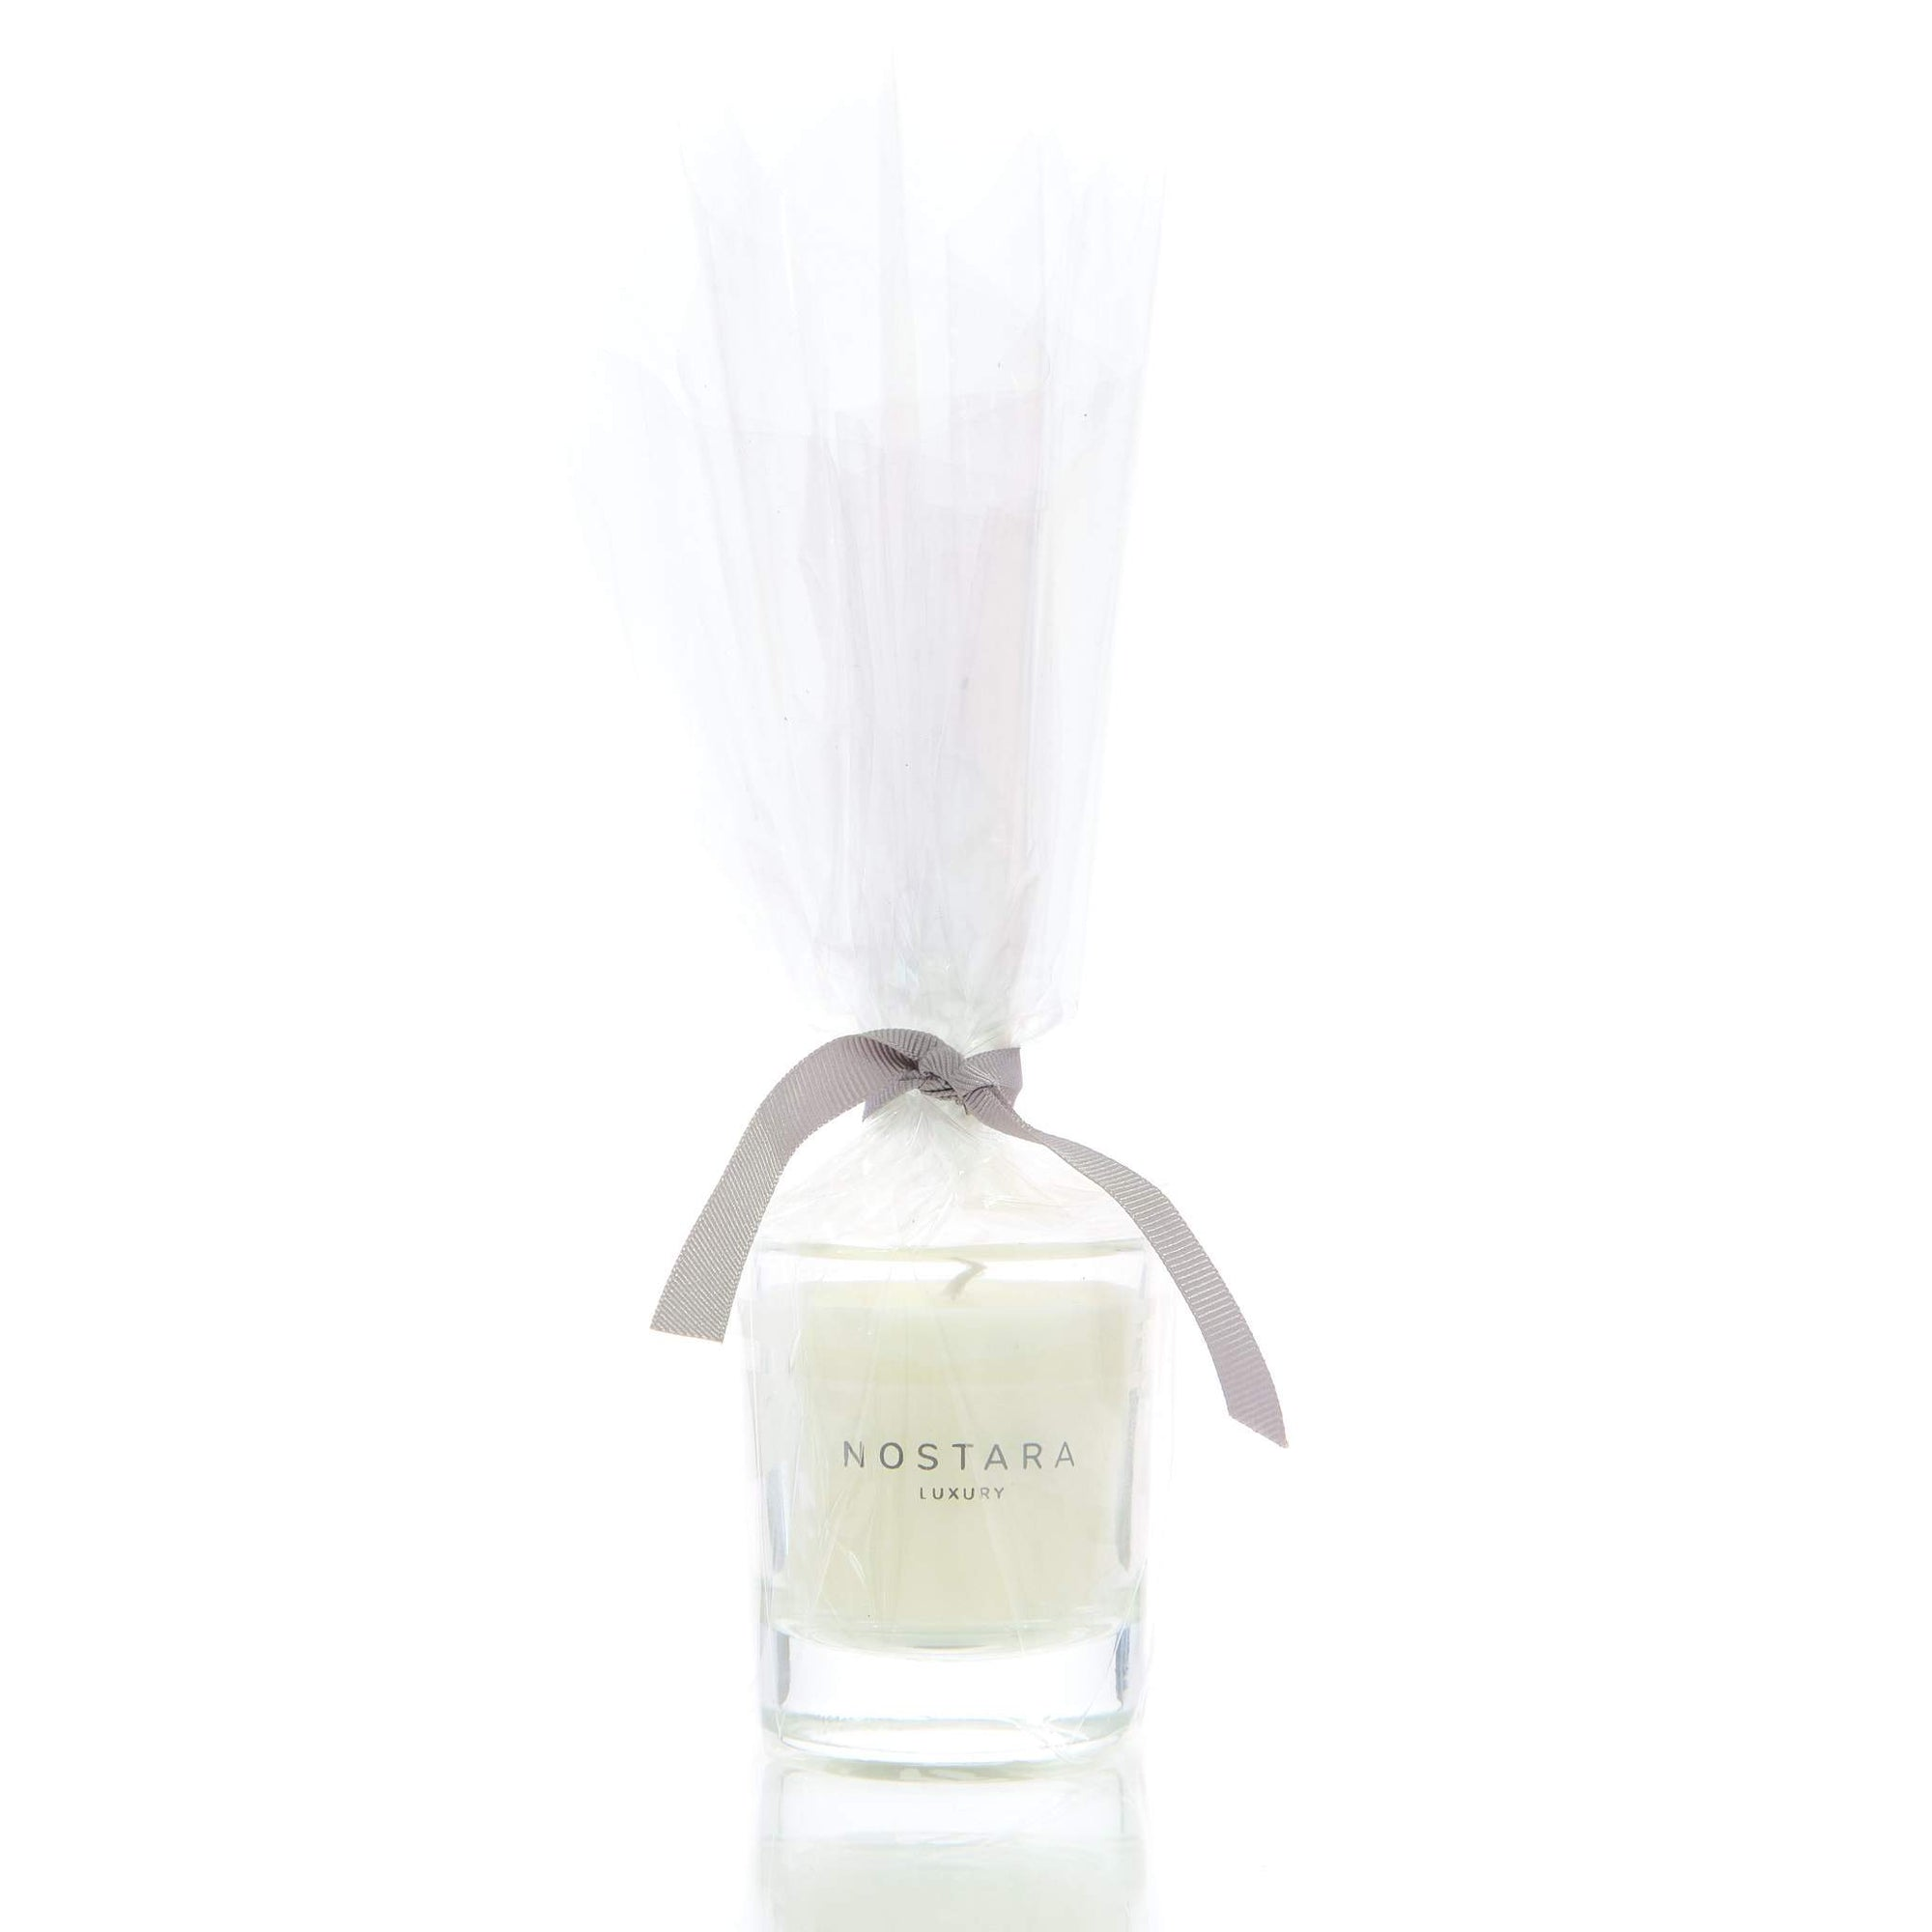 Linen & White Gardenia Scented Travel Candle-Travel-Nostara